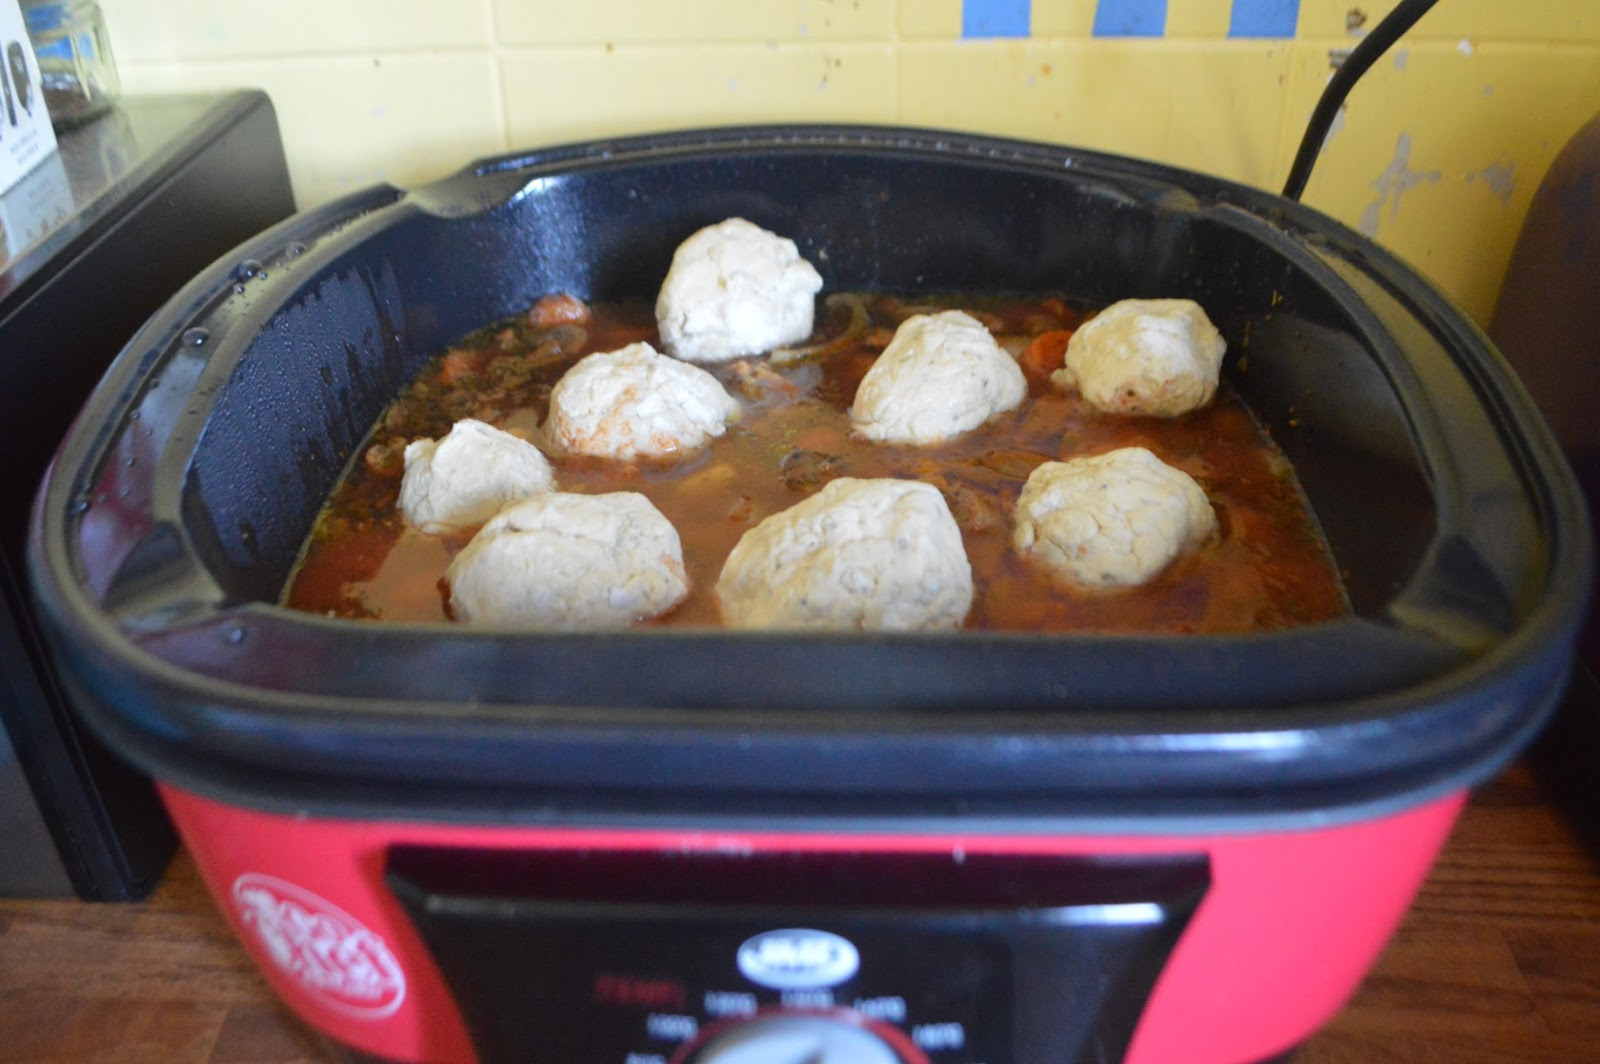 quorn and mushroom stew in the jml go chef 8 in 1 cooker